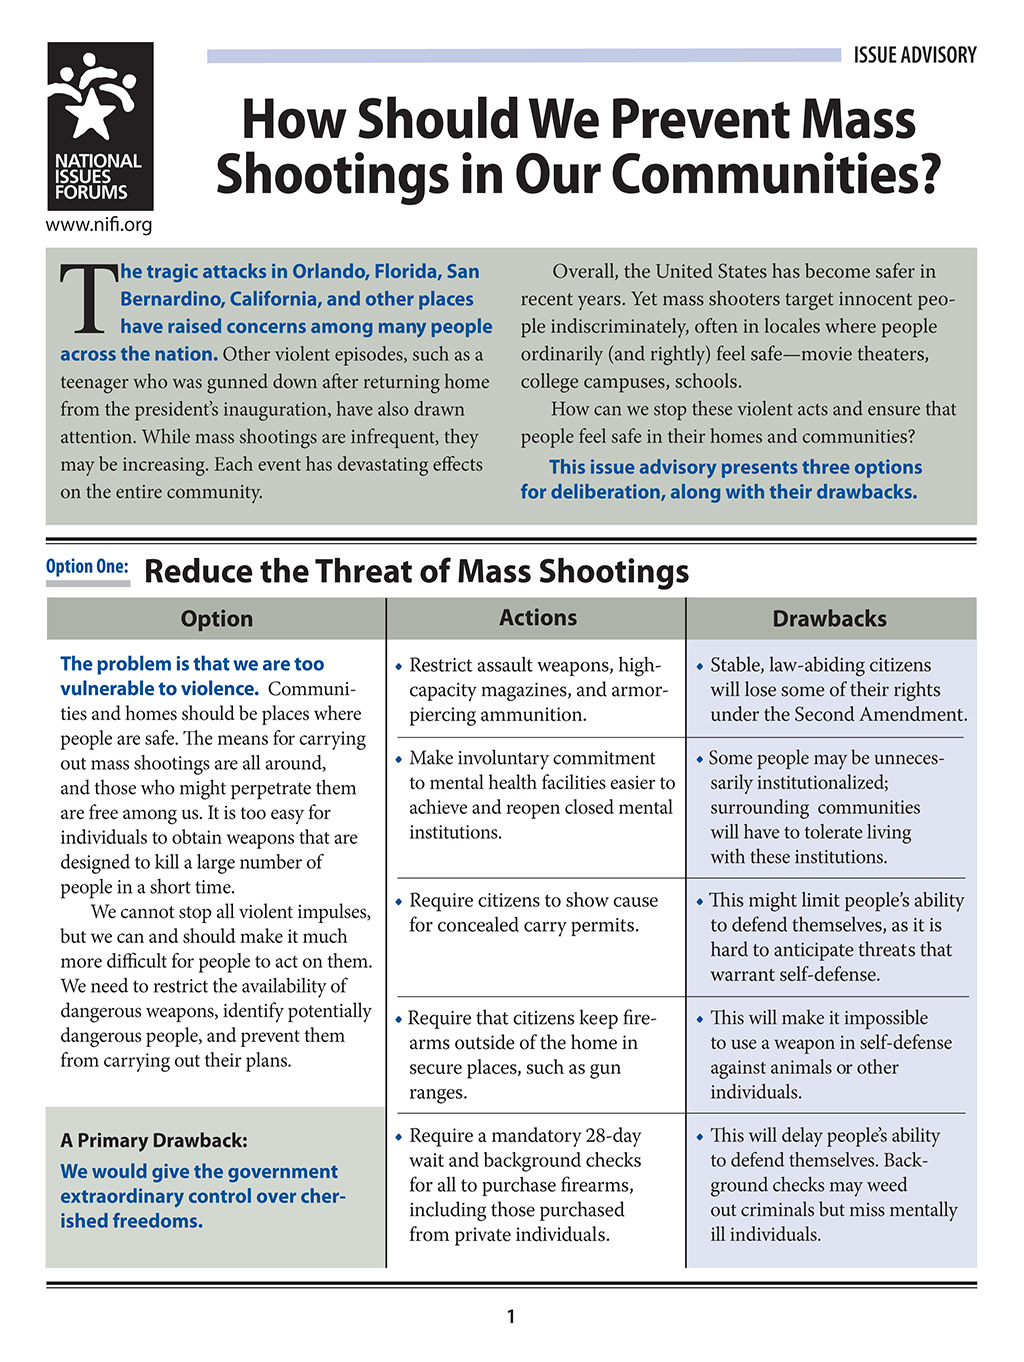 Mass shootings cover